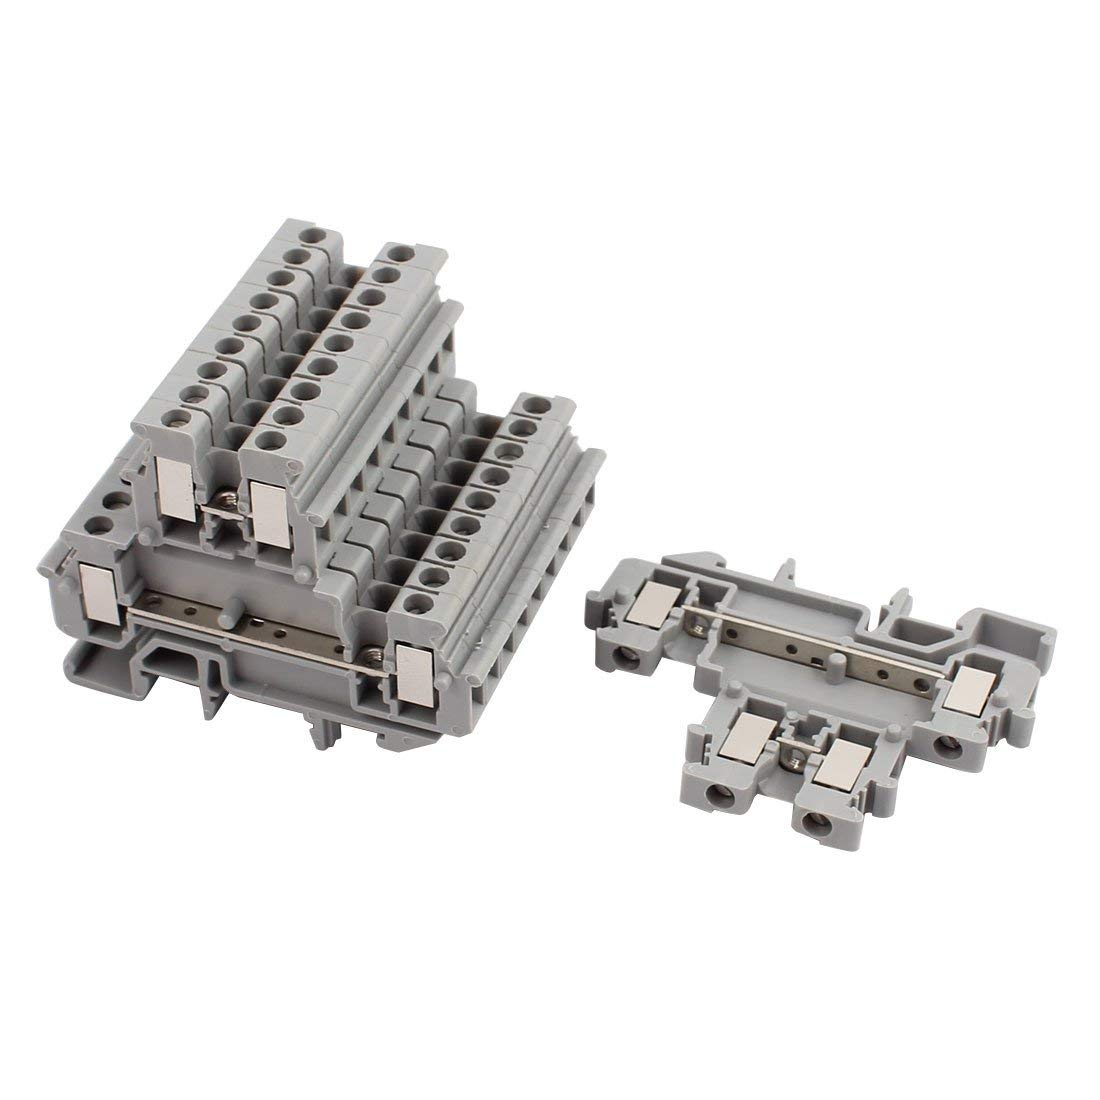 uxcell 10Pcs MBKKB2.5 DIN Rail Mount Double-Level Terminal Block 500V 2.5mm2 Cable Gray